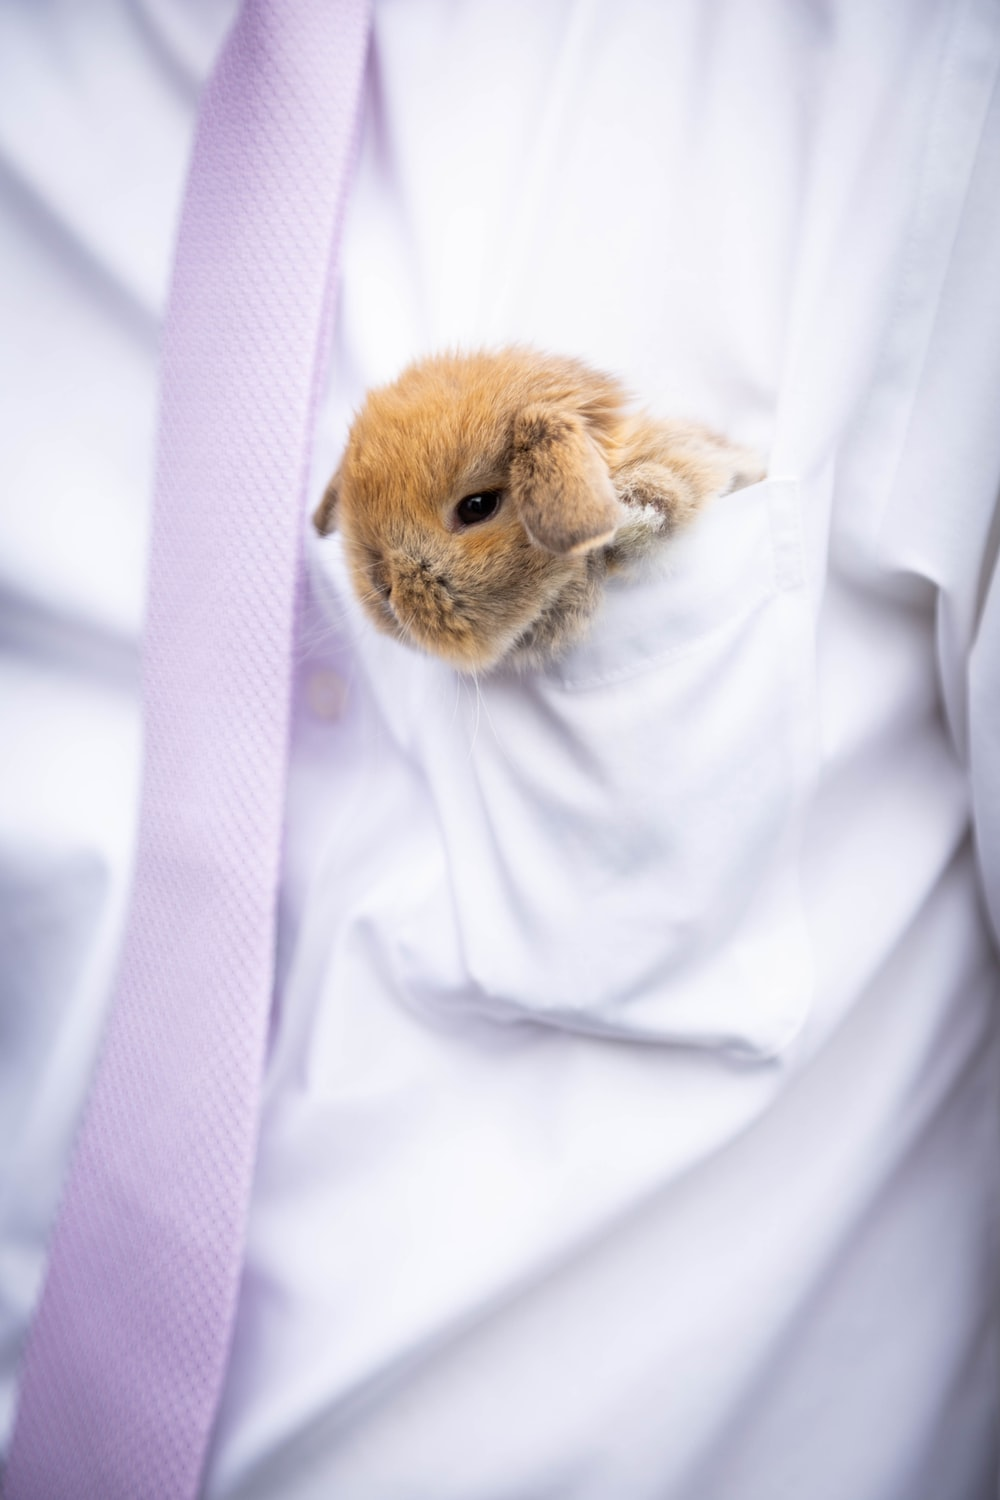 brown and white rabbit on white textile